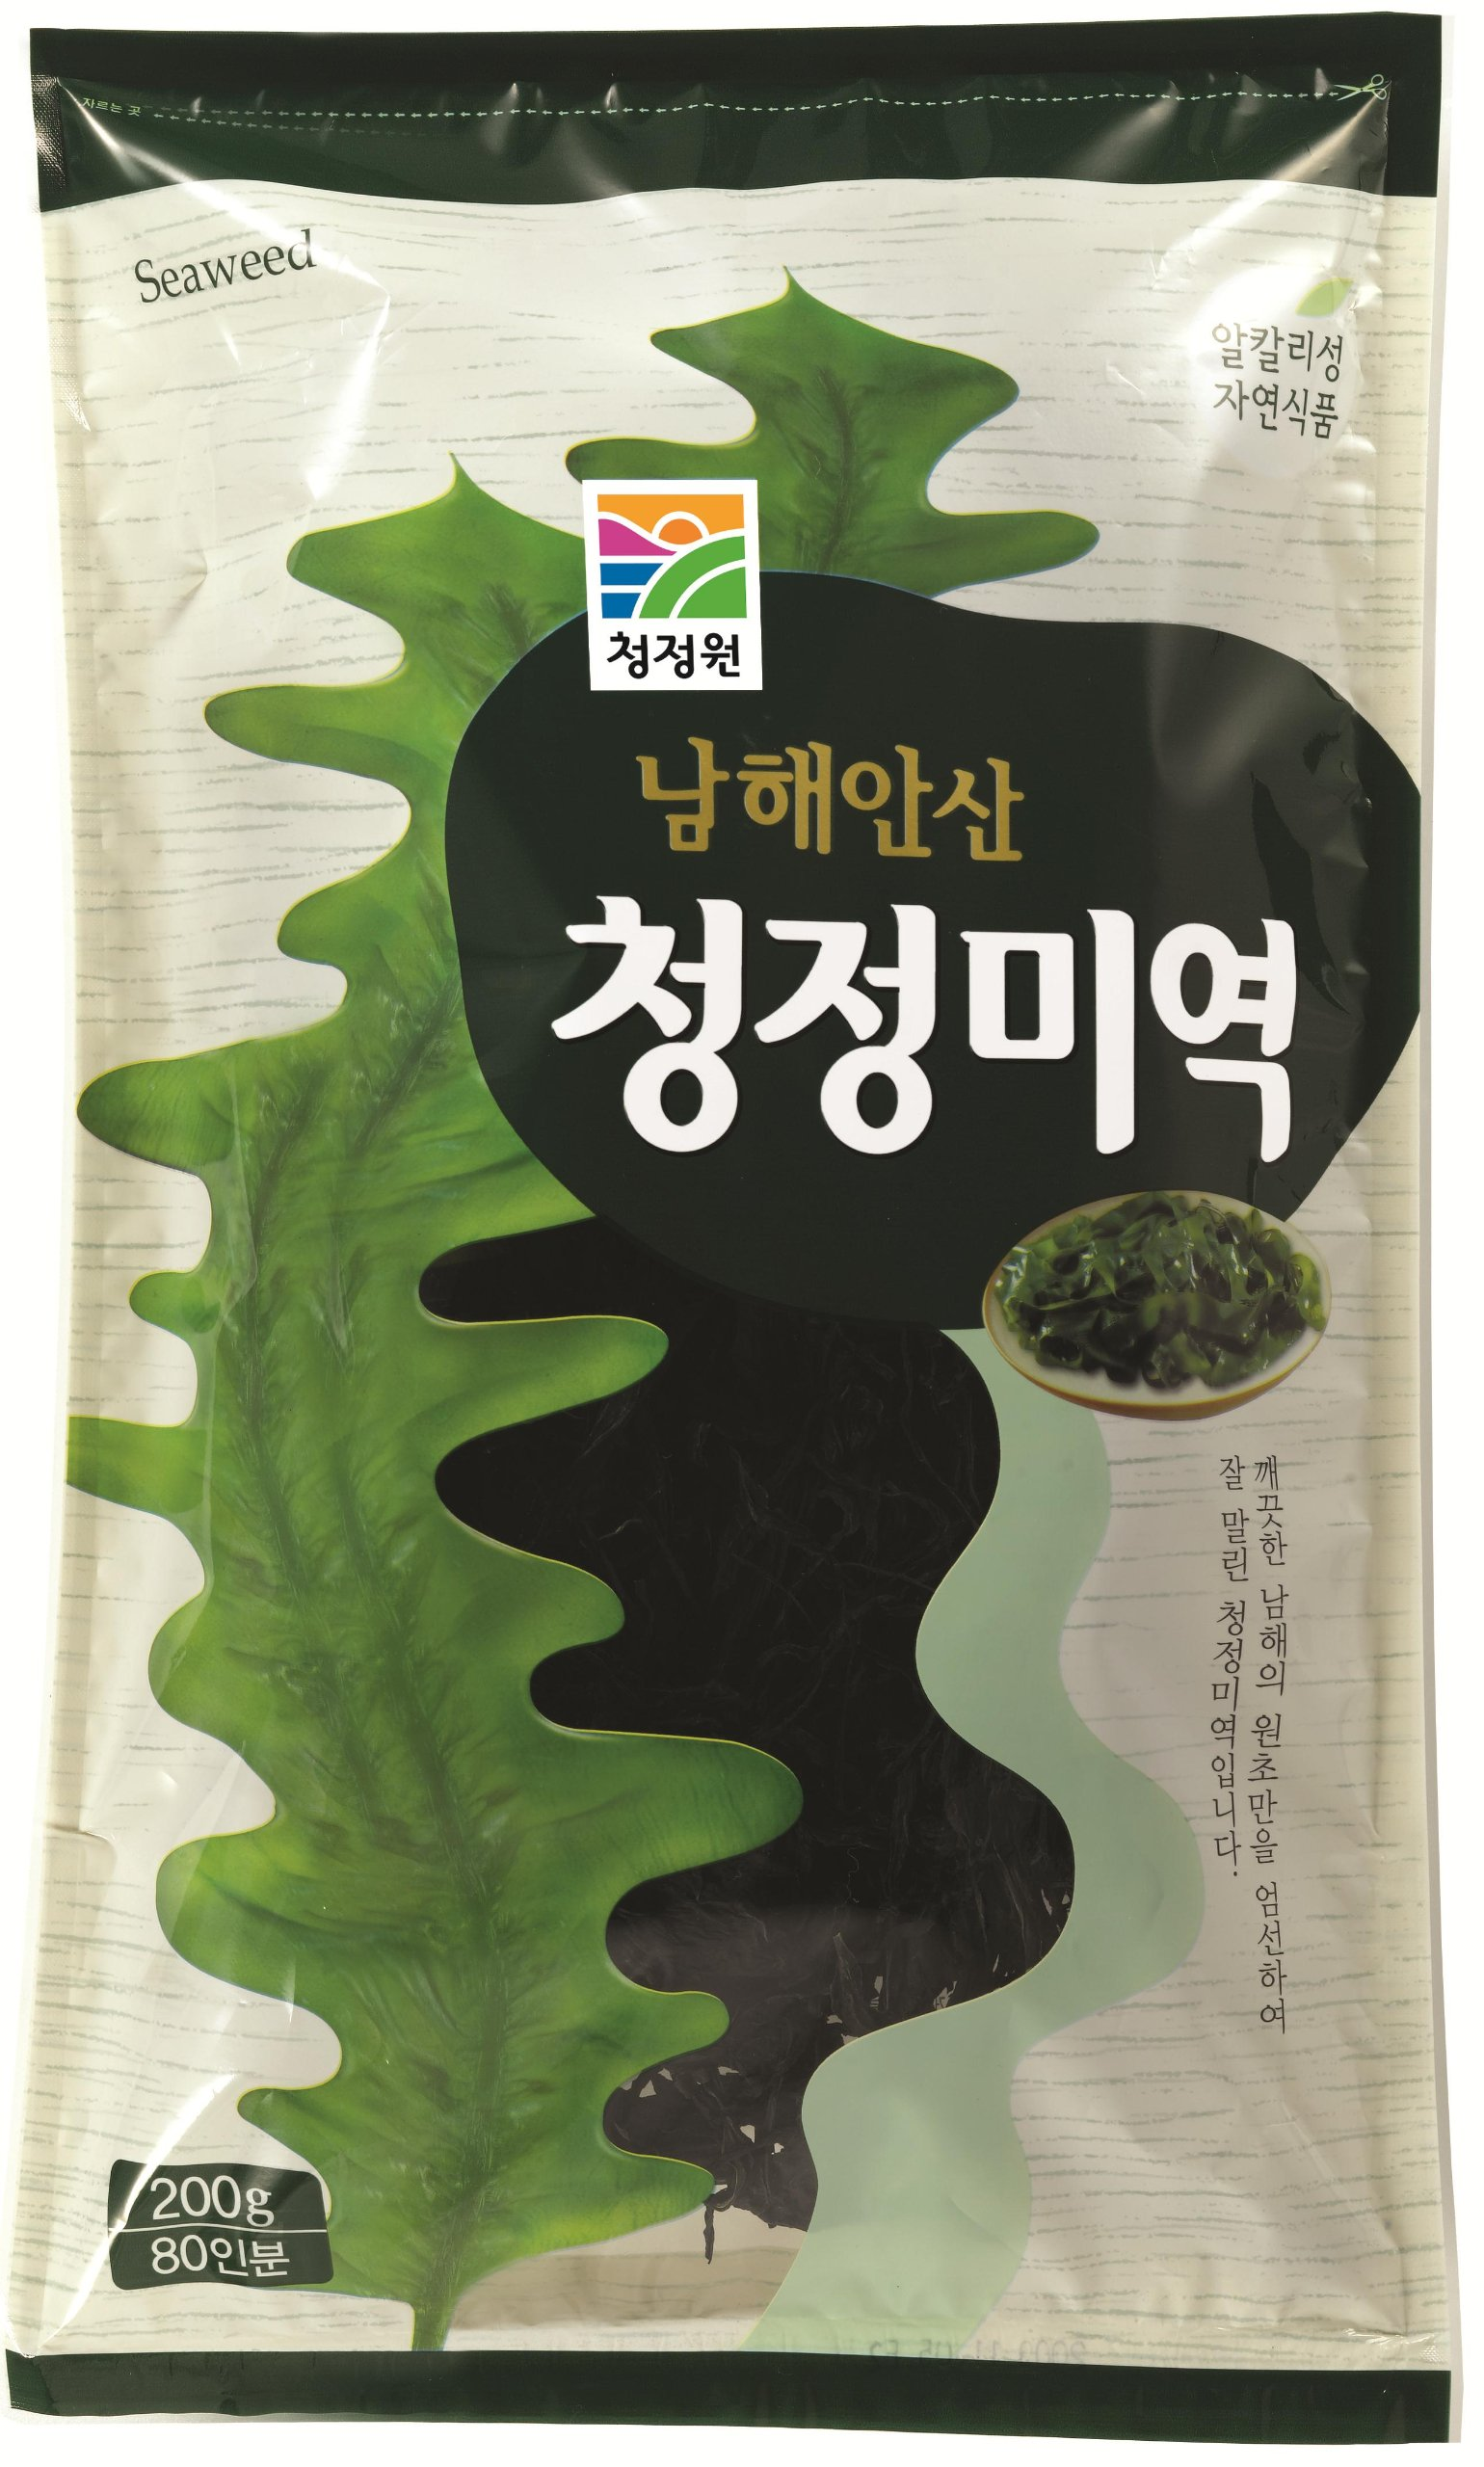 Chung Jung One Dried Seaweed 7 oz (200 g) (Pack of 2)